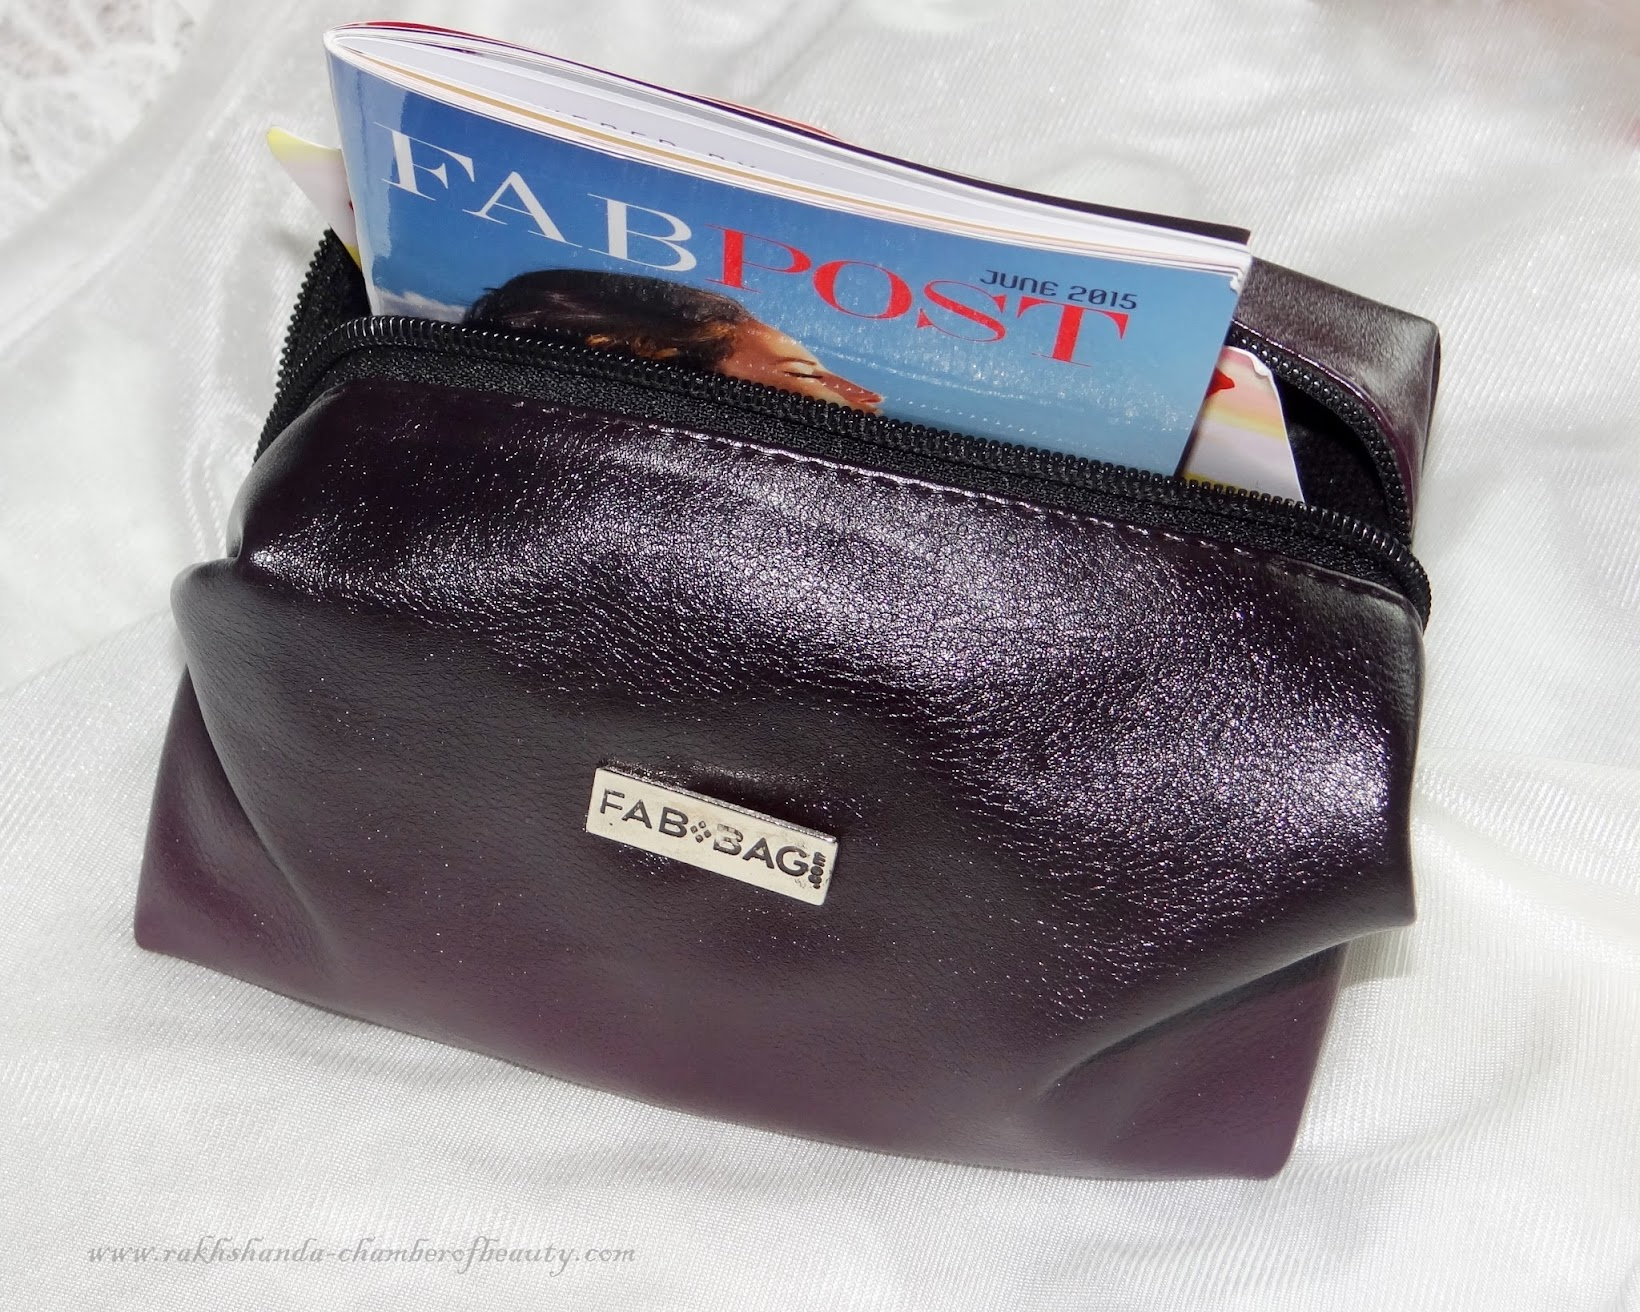 June Fab Bag- Review, swatches and more.., Cuccio Naturale, Votre, All Good scents, Ananda Moisturiser, Chamber of Beauty, Indian Beauty Blogger